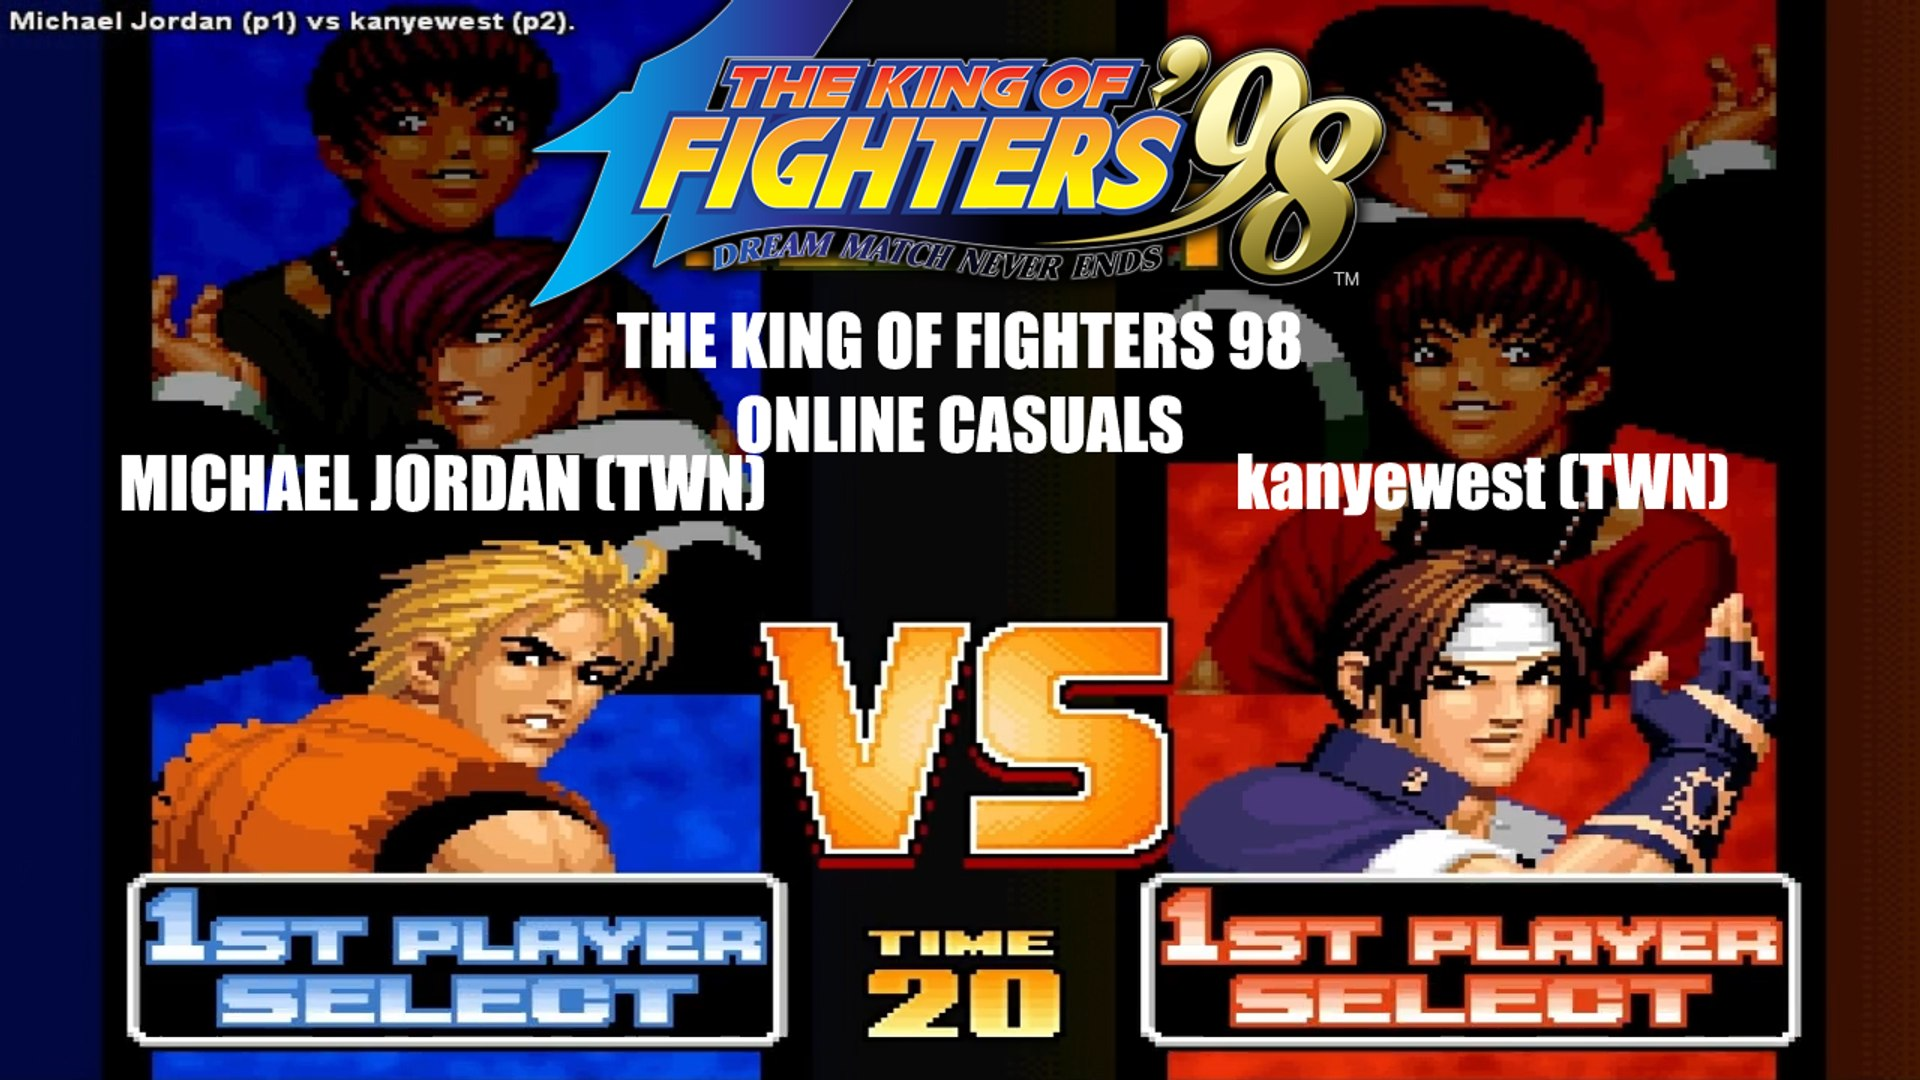 chaussures de séparation 0bbbf d443d [HD] - Fightcade - KOF 98 Online match - Michael Jordan (Taiwan) vs.  kanyewest (Taiwan)